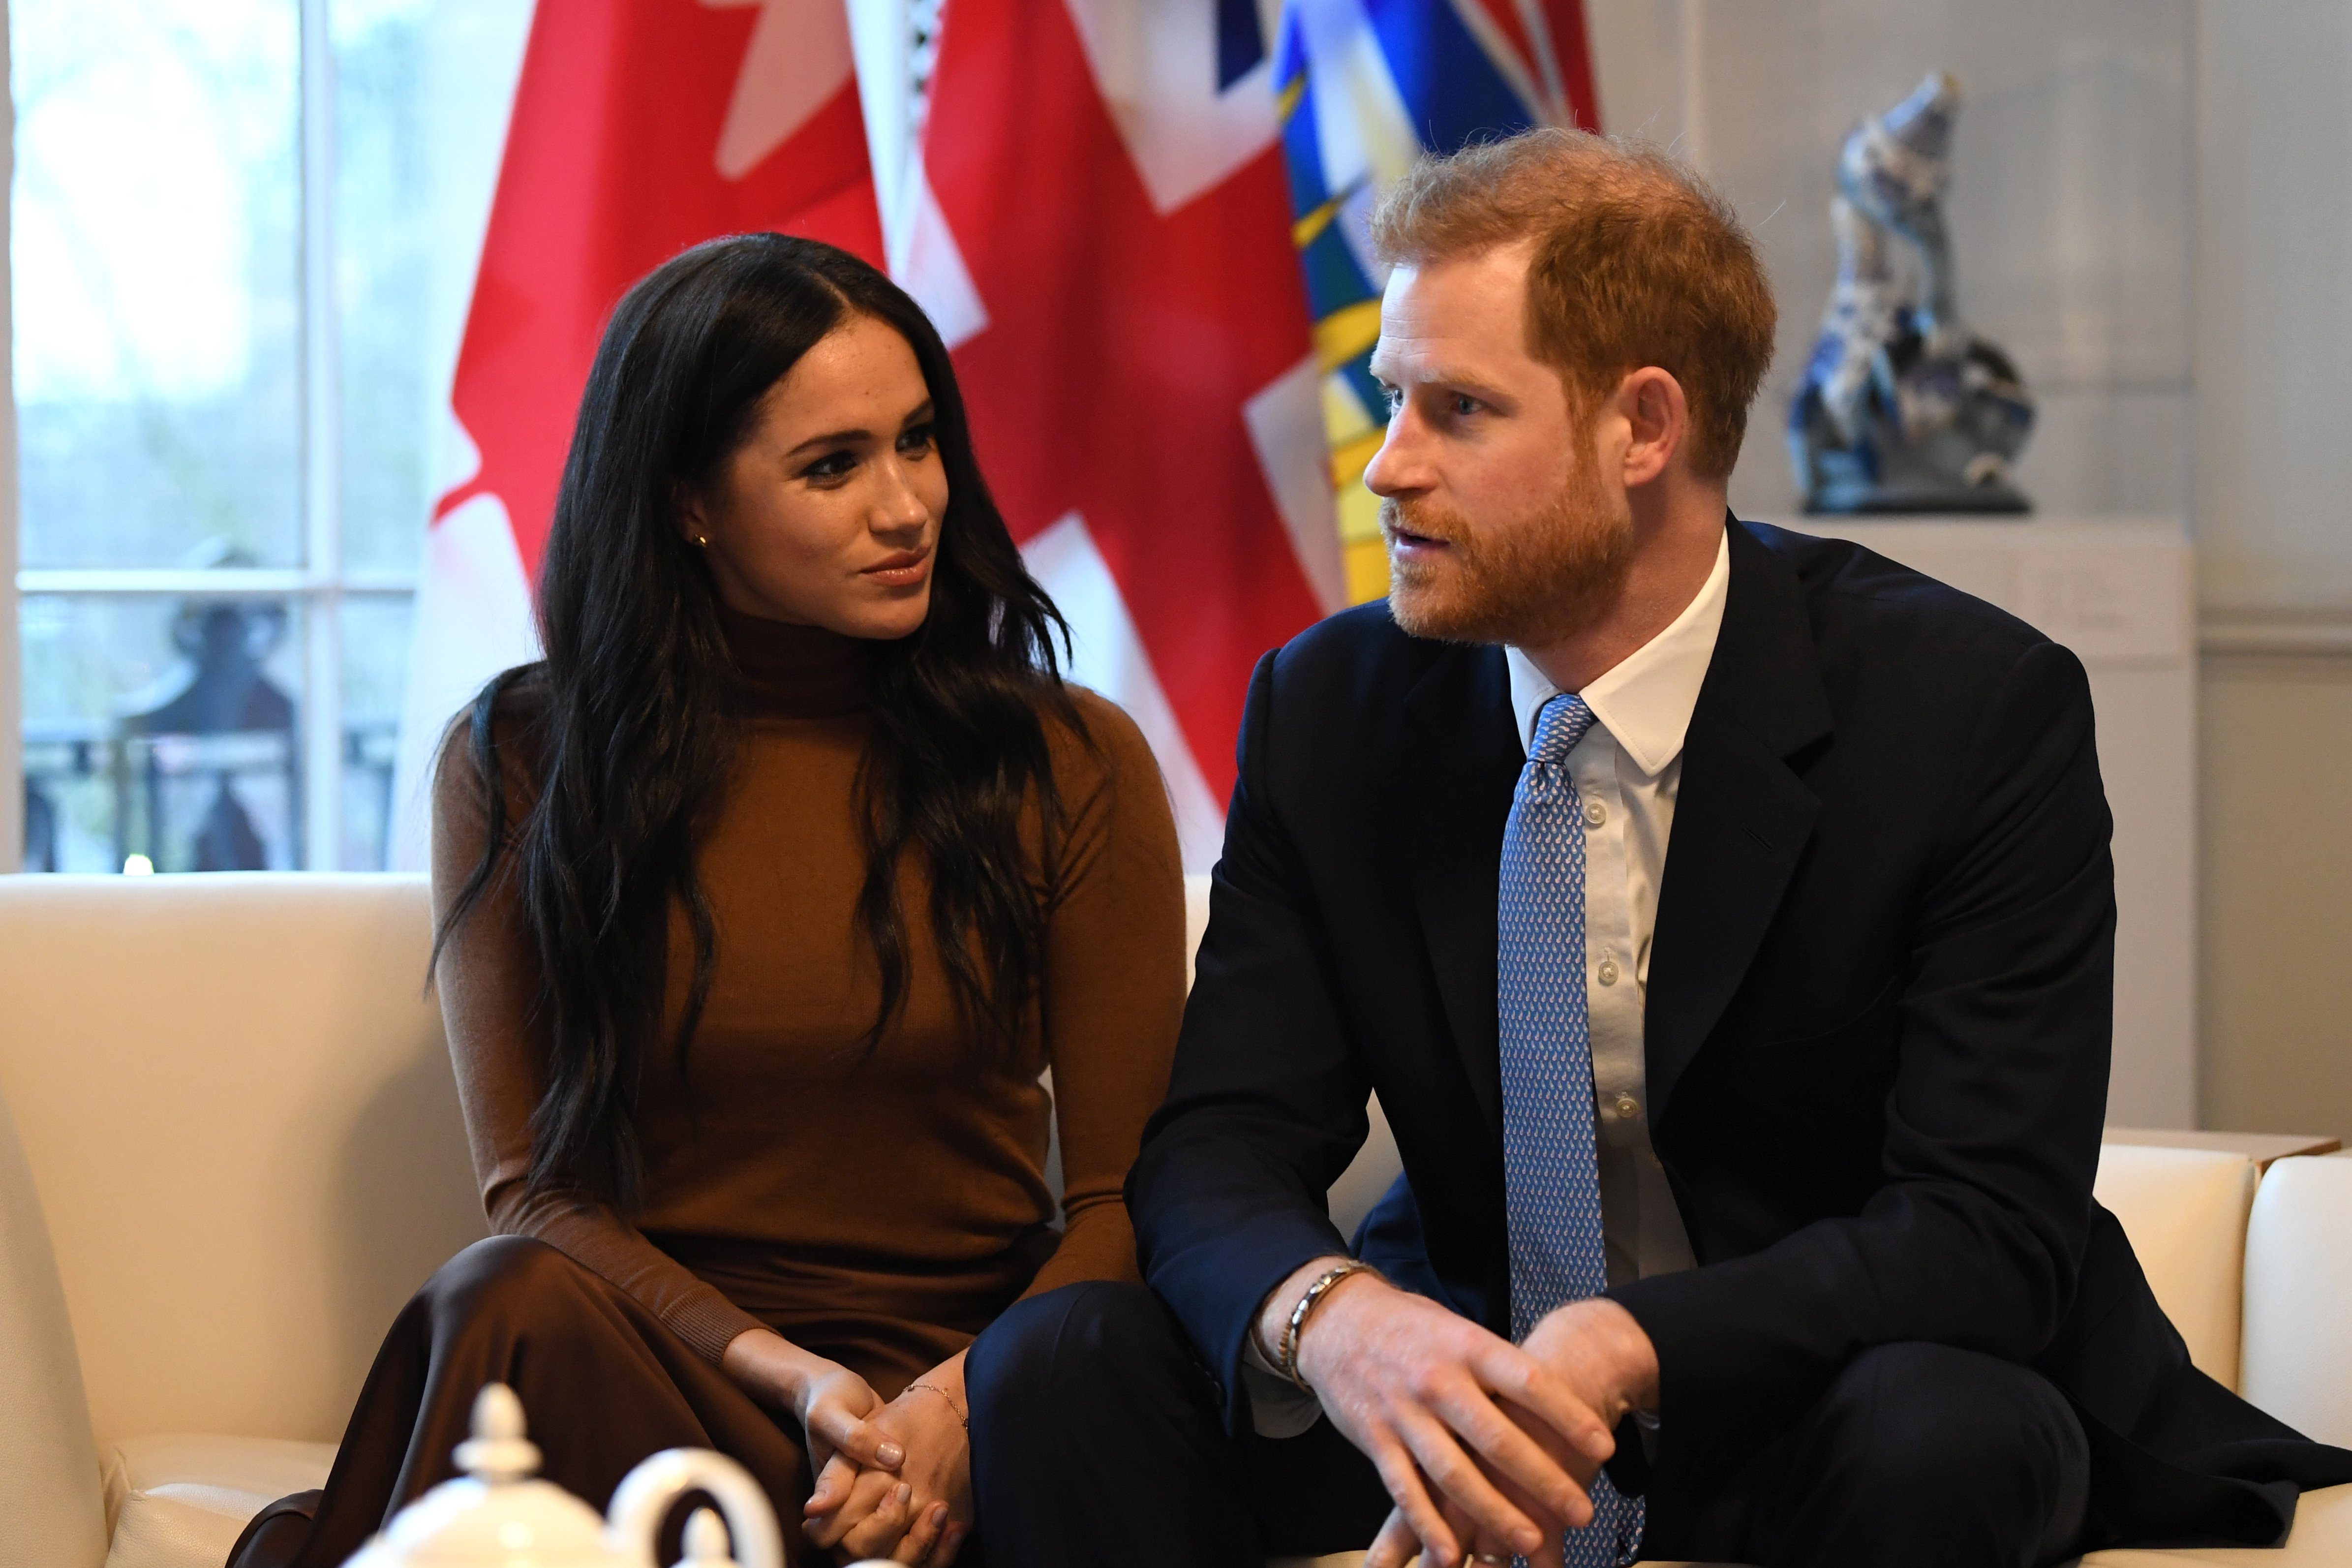 Prince Harry and Meghan Markle during their visit to Canada House on January 7, 2020 in London, England | Photo: Getty Images